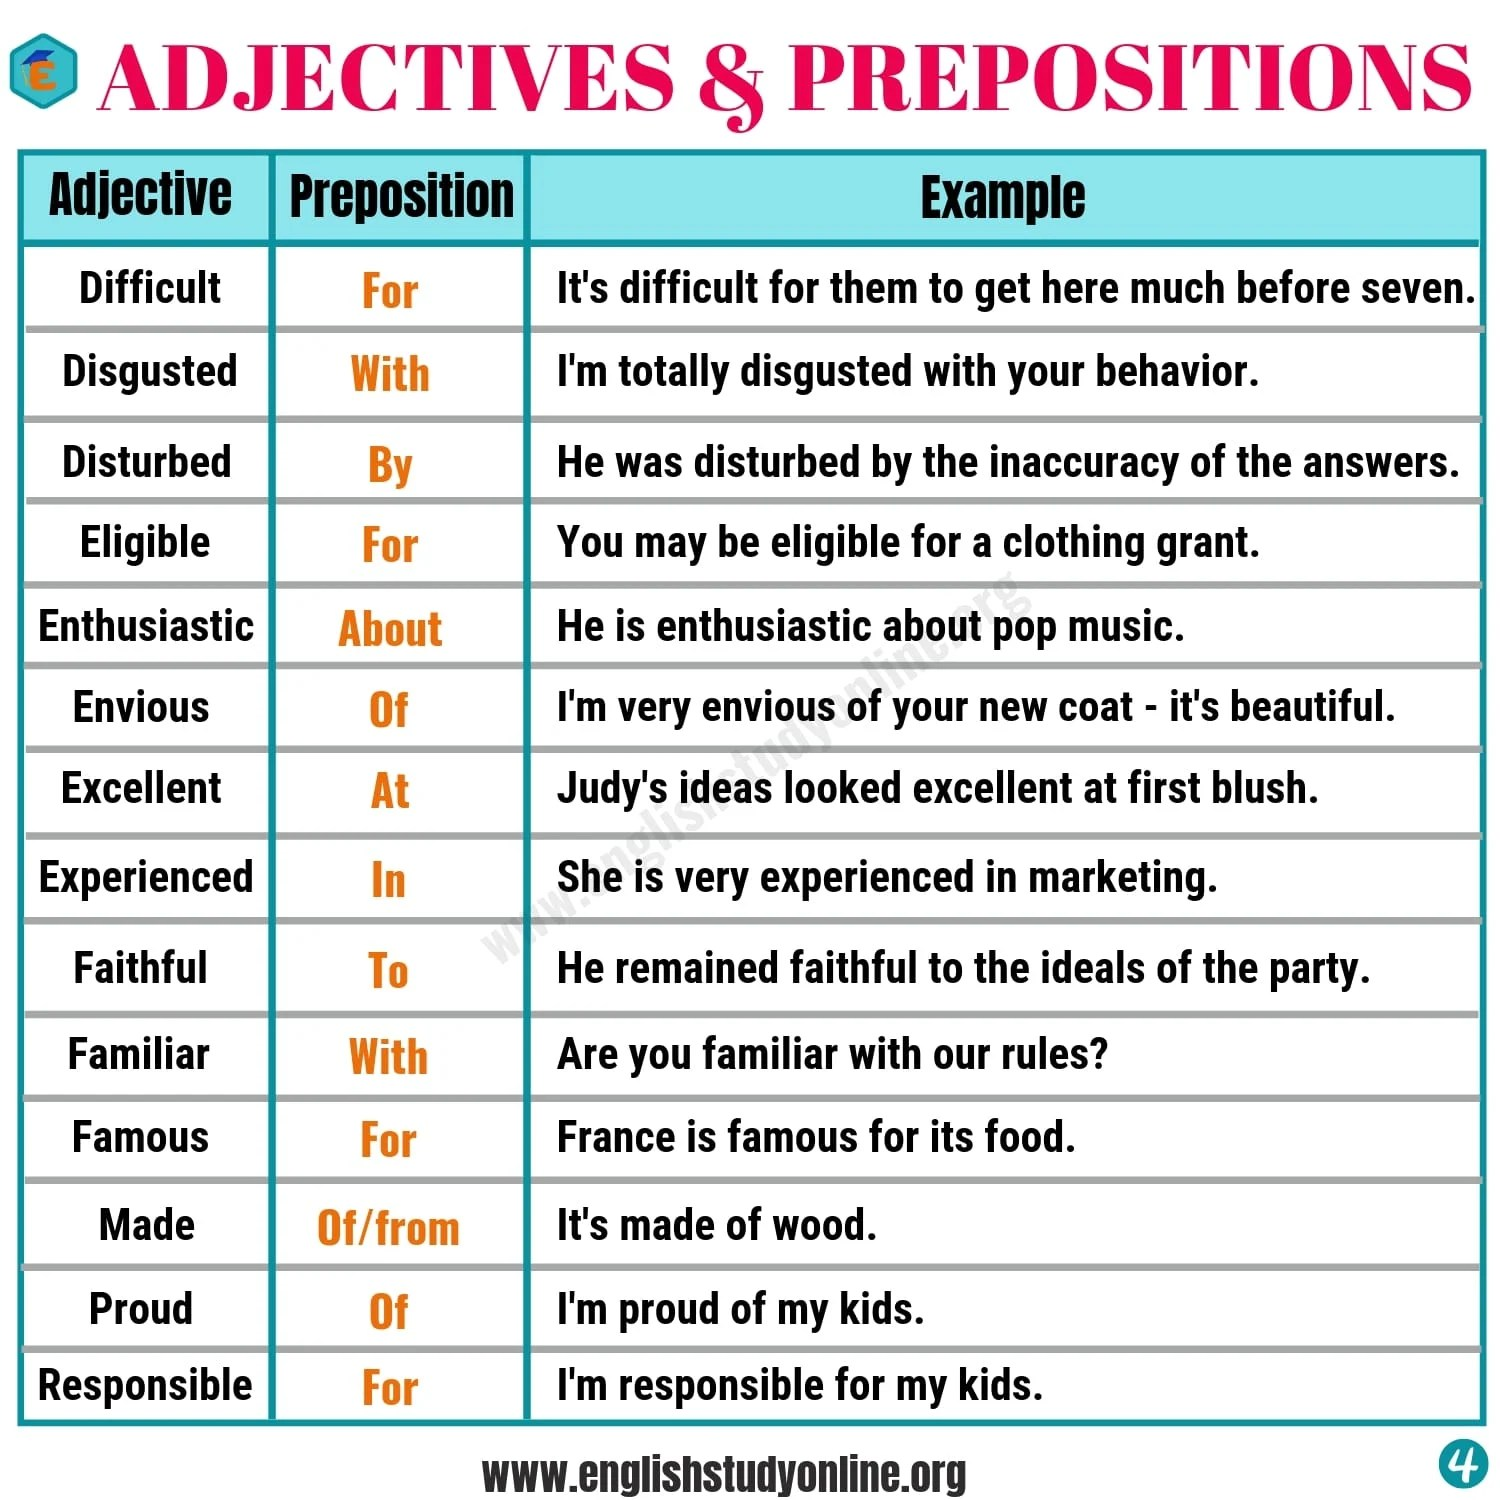 Collocation Examples 60 Powerful Adjectives And Prepositions